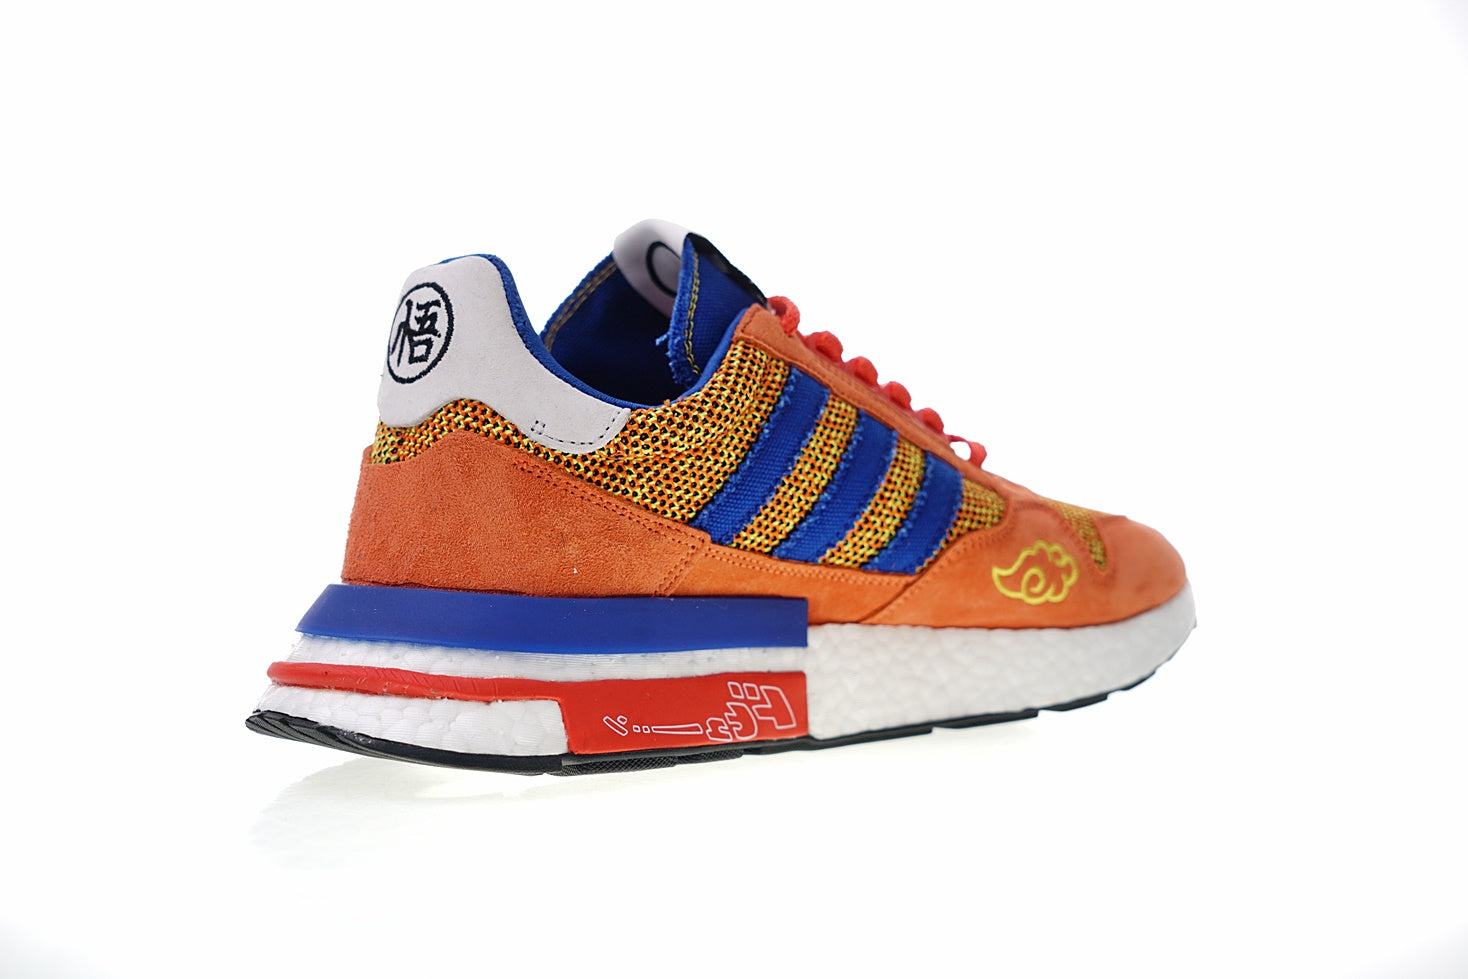 new style b548f 6bfd8 Dragon Ball Z x Adidas ZX500 RM Boost